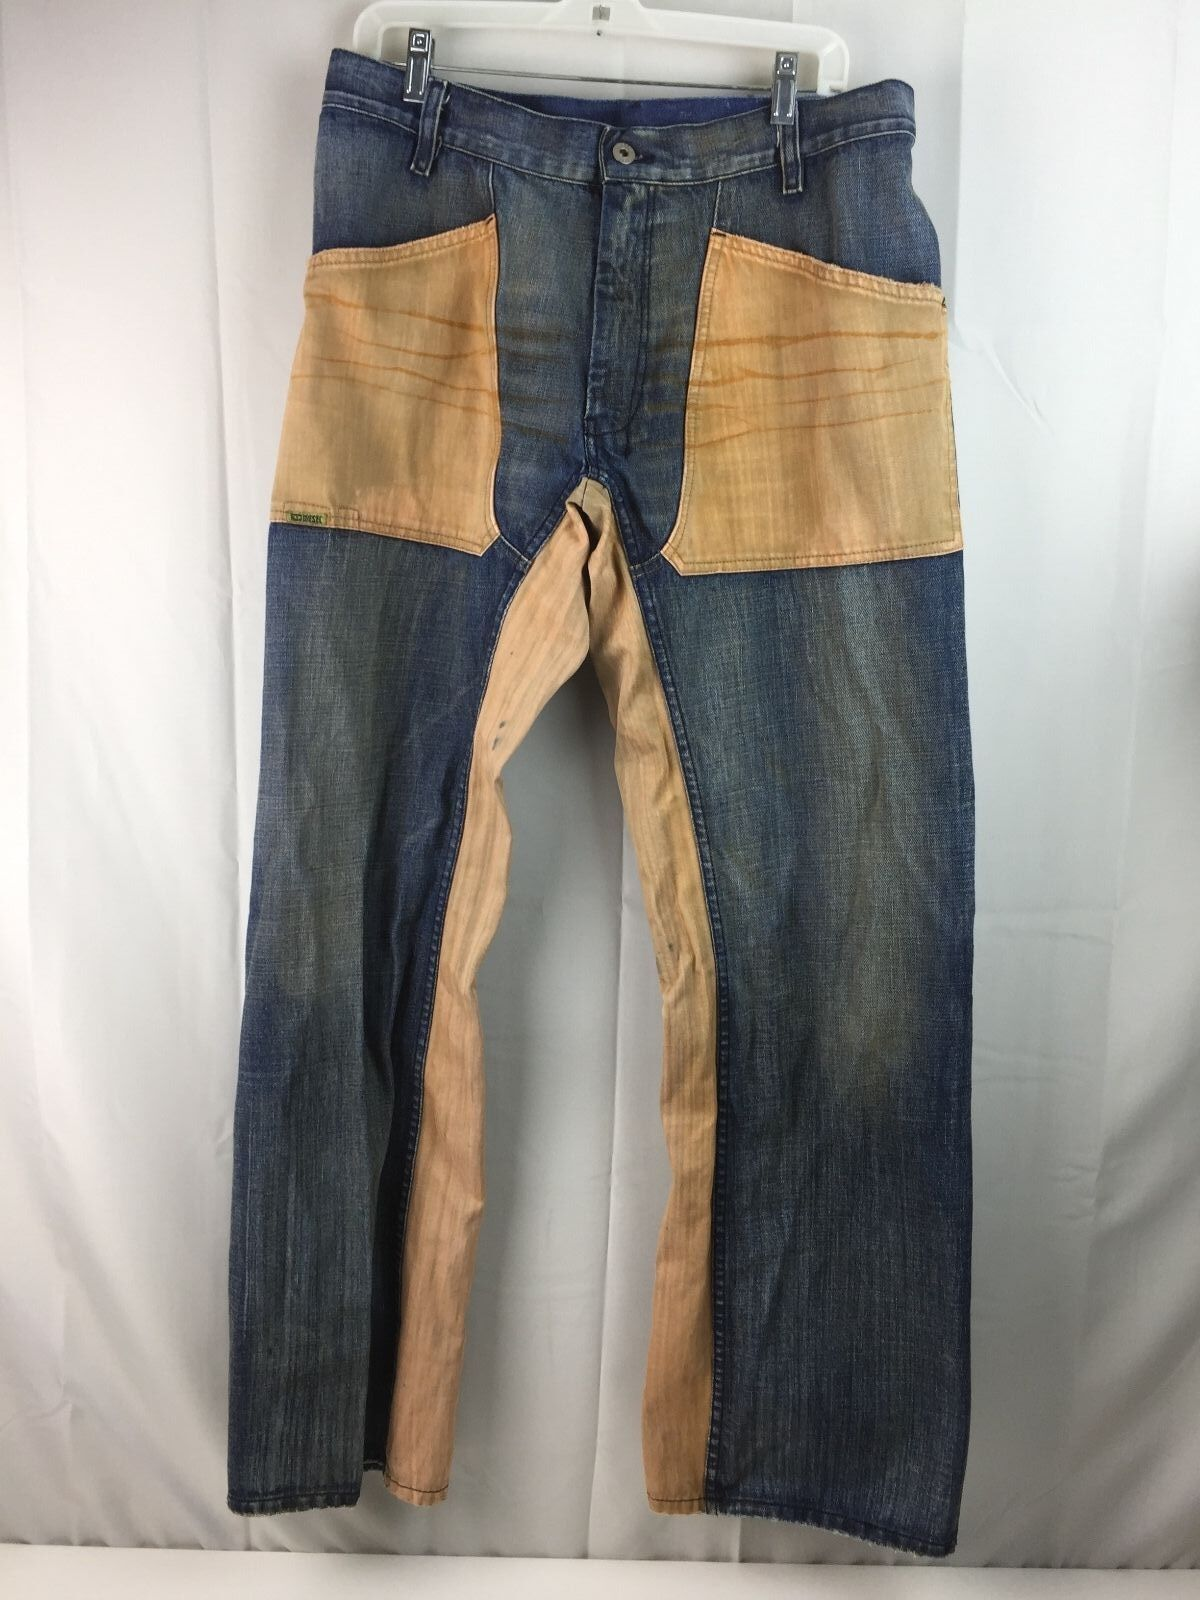 Mens Diesel Jeans Medium Wash Brown bluee Distressed Patched Two Tone 33 34